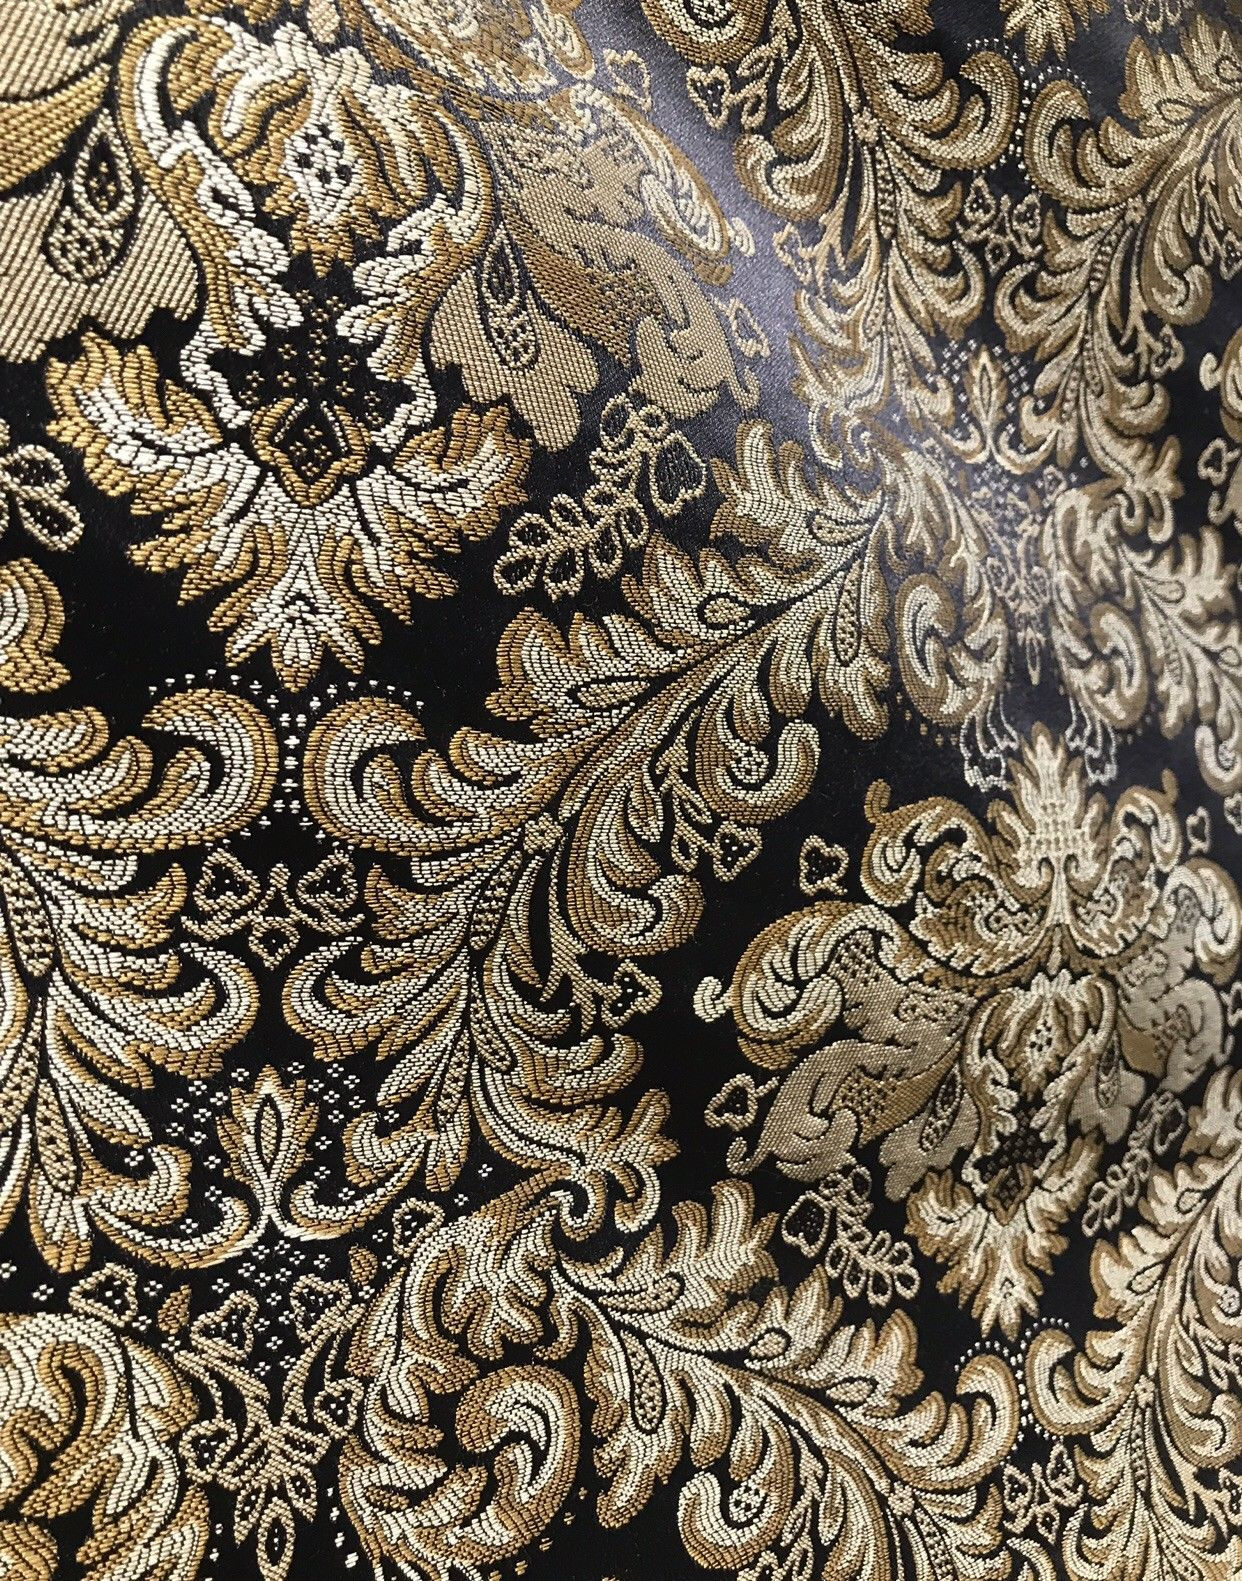 "SWATCH 5"" x 8"" -Brocade Satin Jacquard Fabric- Black Gold- Upholstery Damask LLPBK0003"